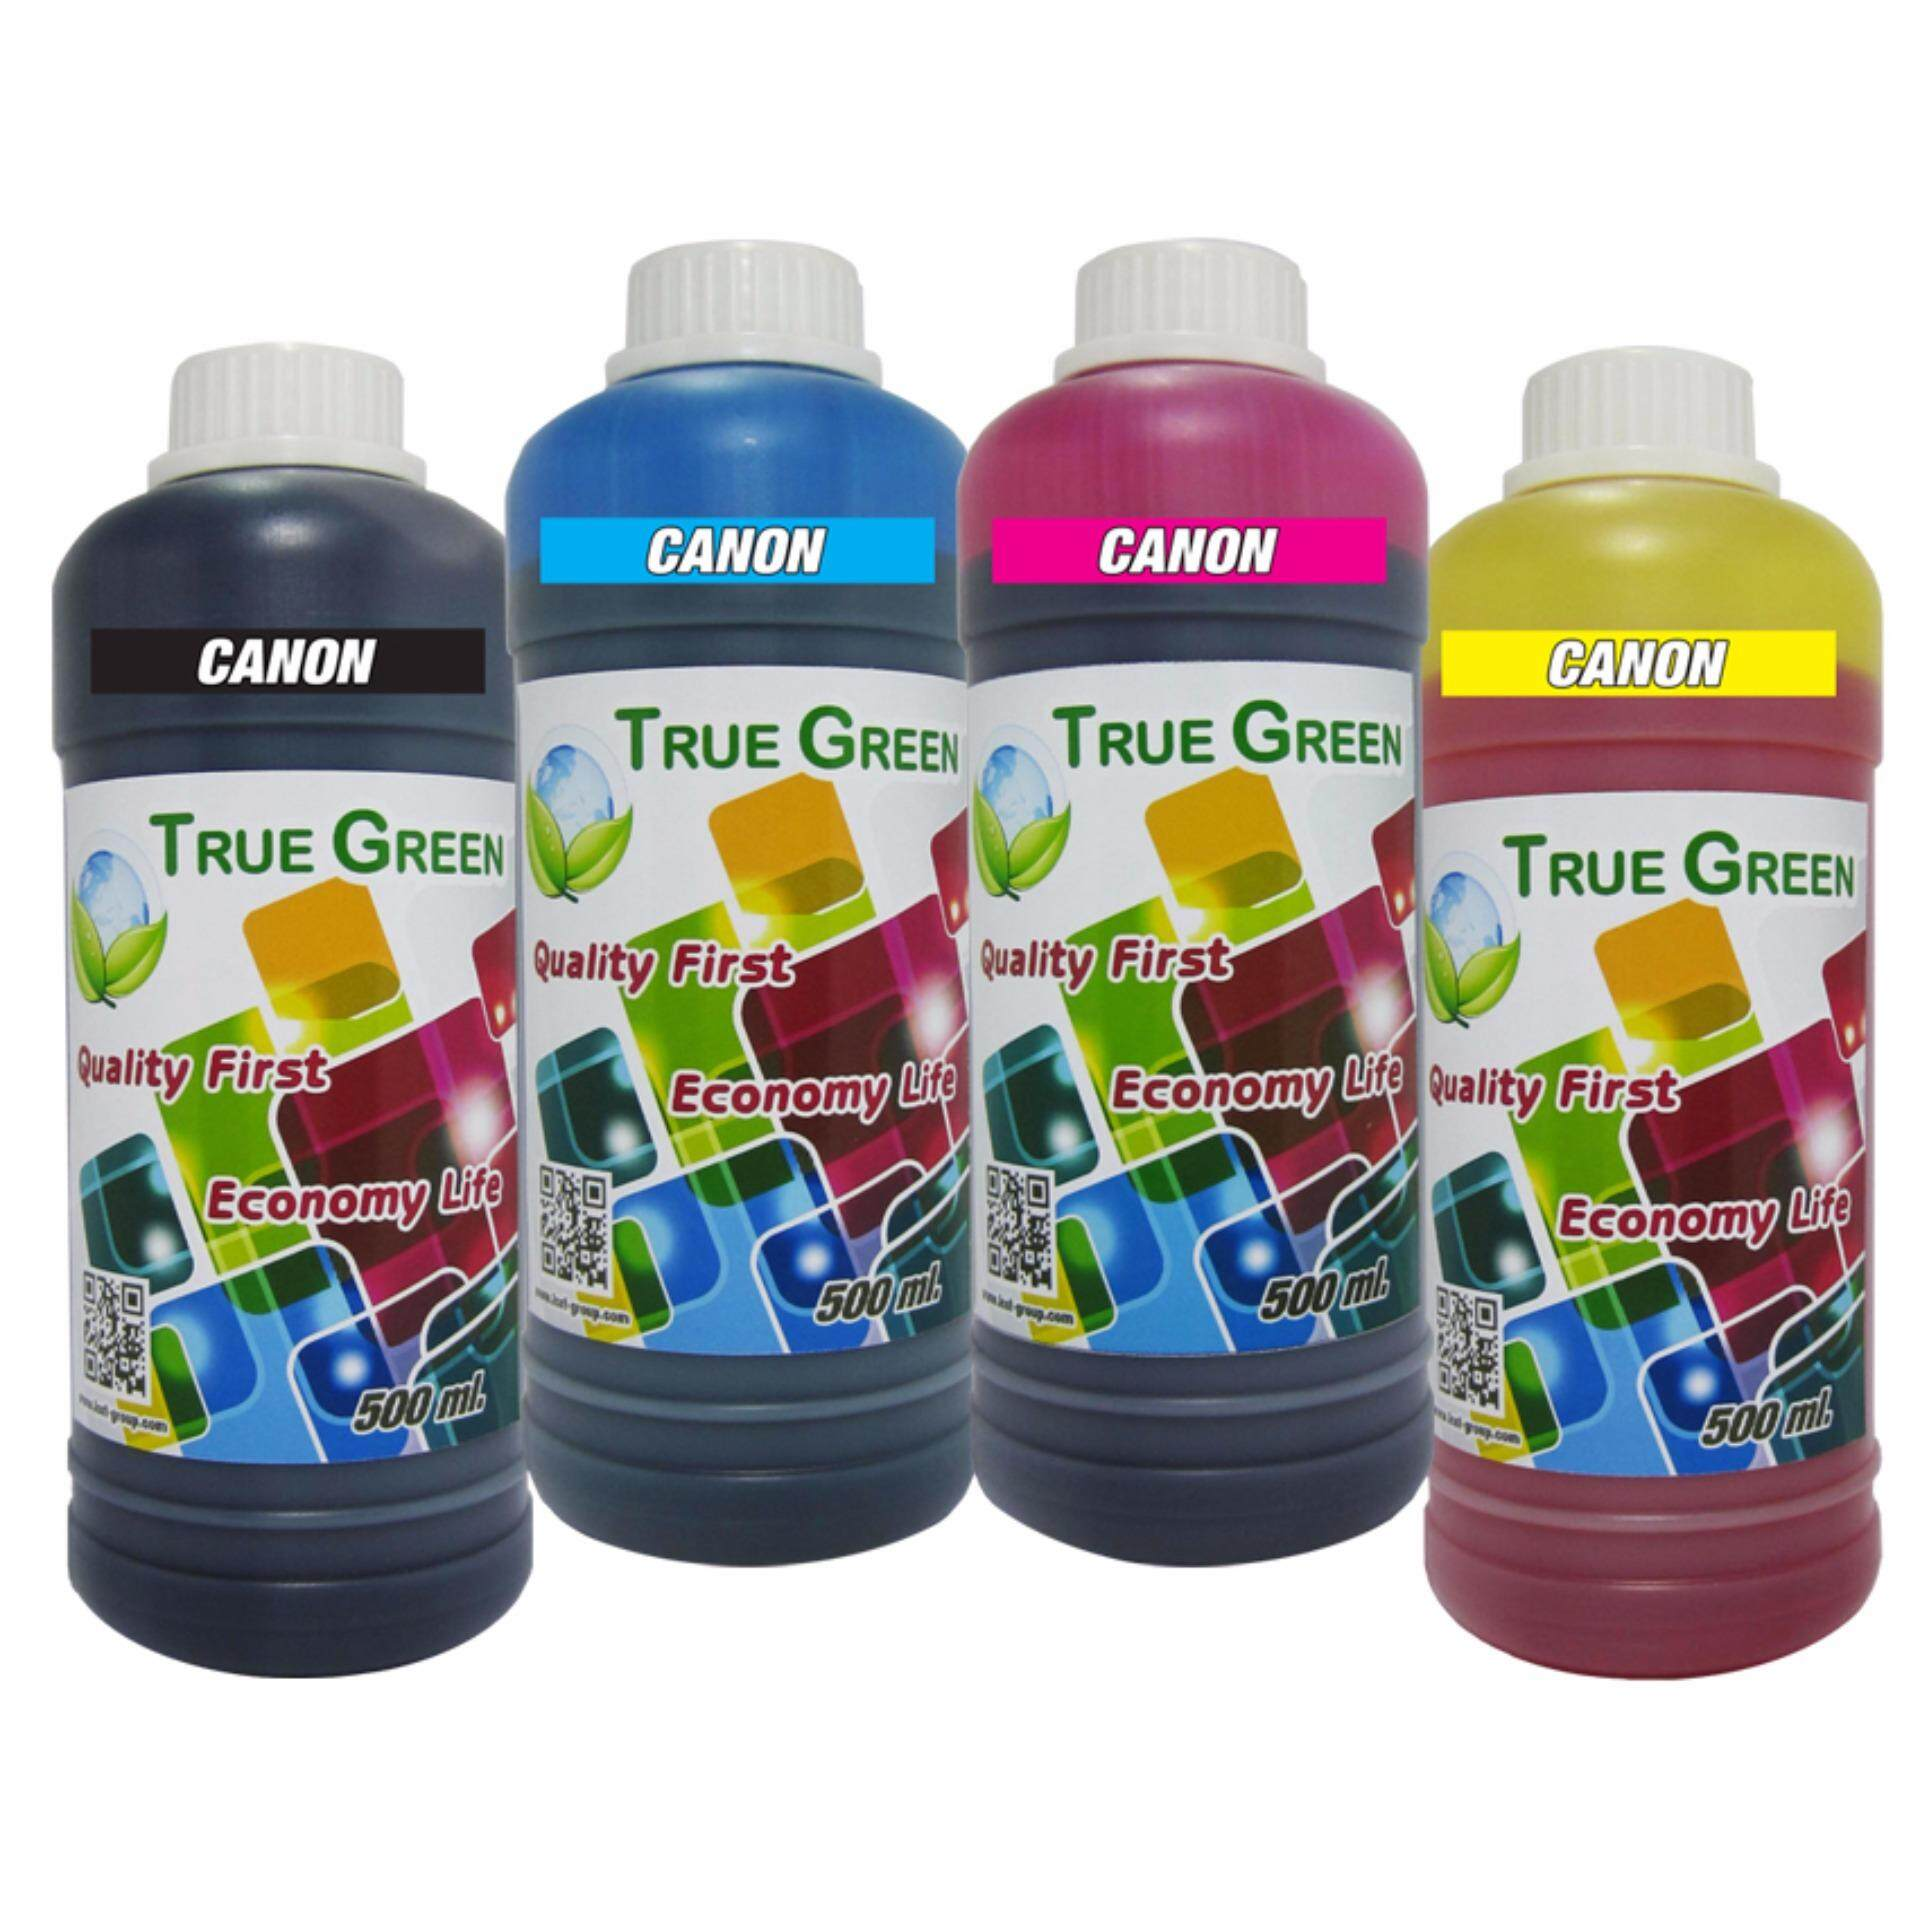 True Green inkjet refill CANON 500ml. all model : B/C/M/Y (หมึกเติม Canon ชุด 4 ขวด B/C/M/Y)